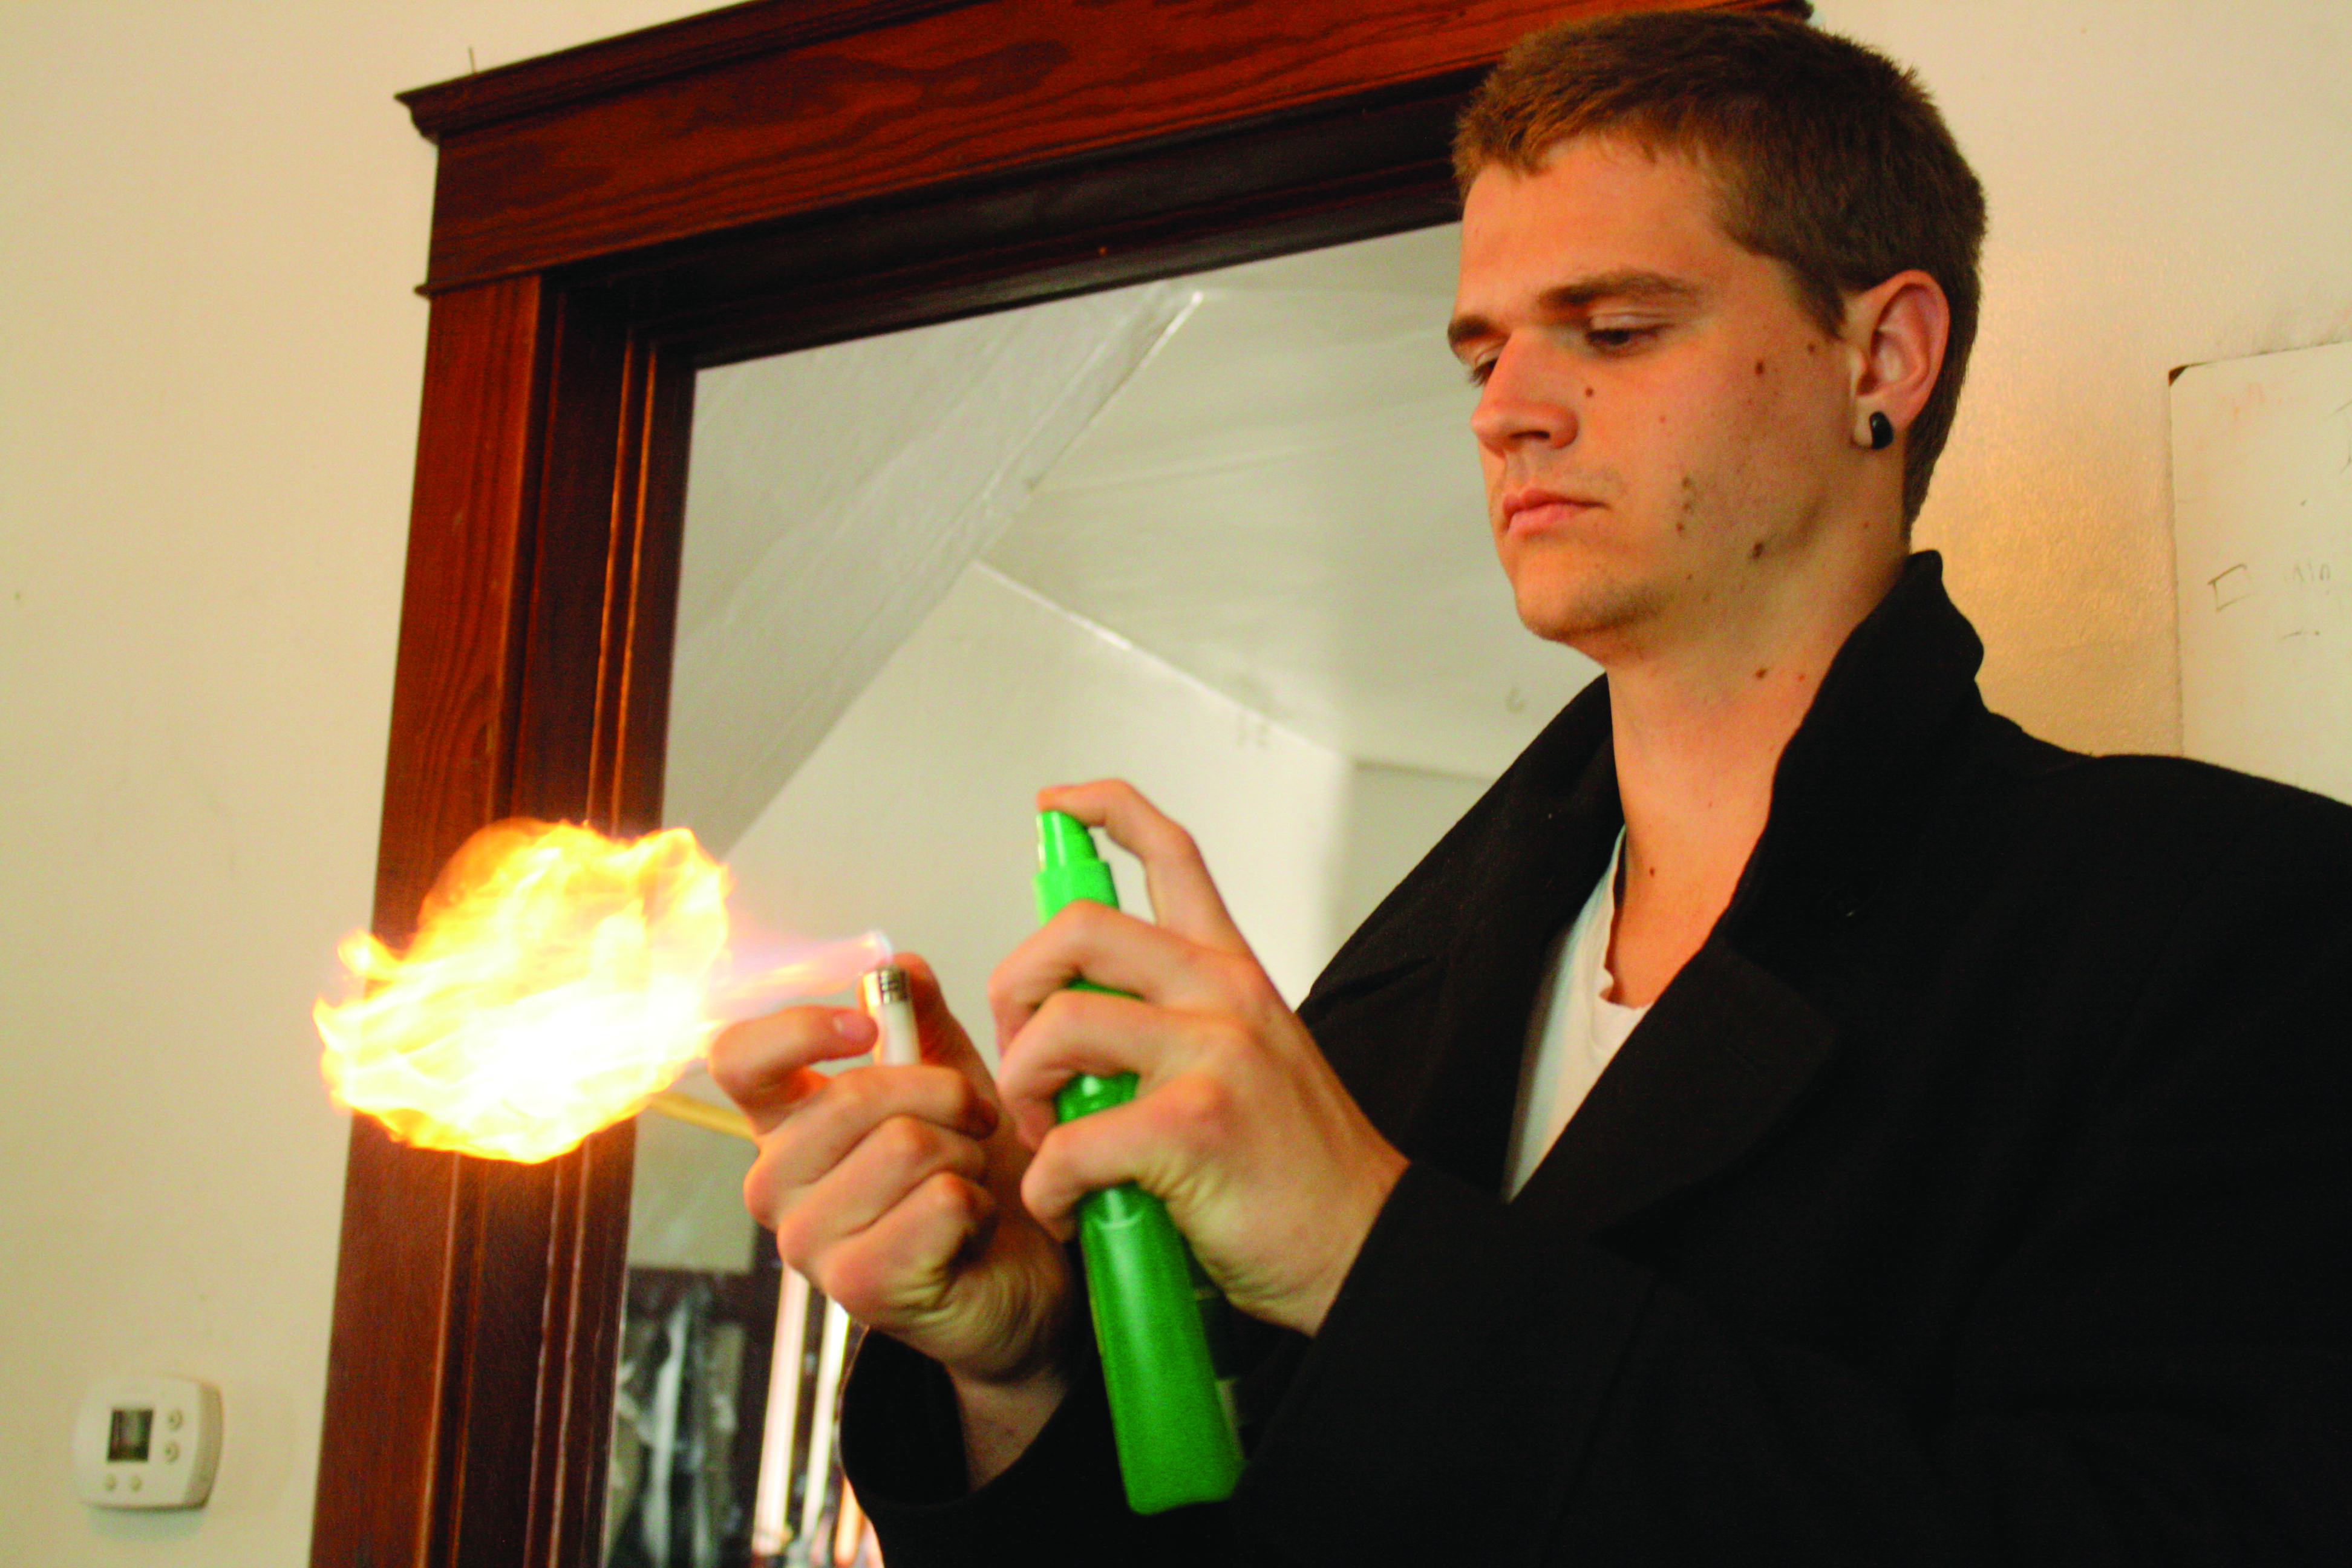 Brian O'Leary holds a burning object